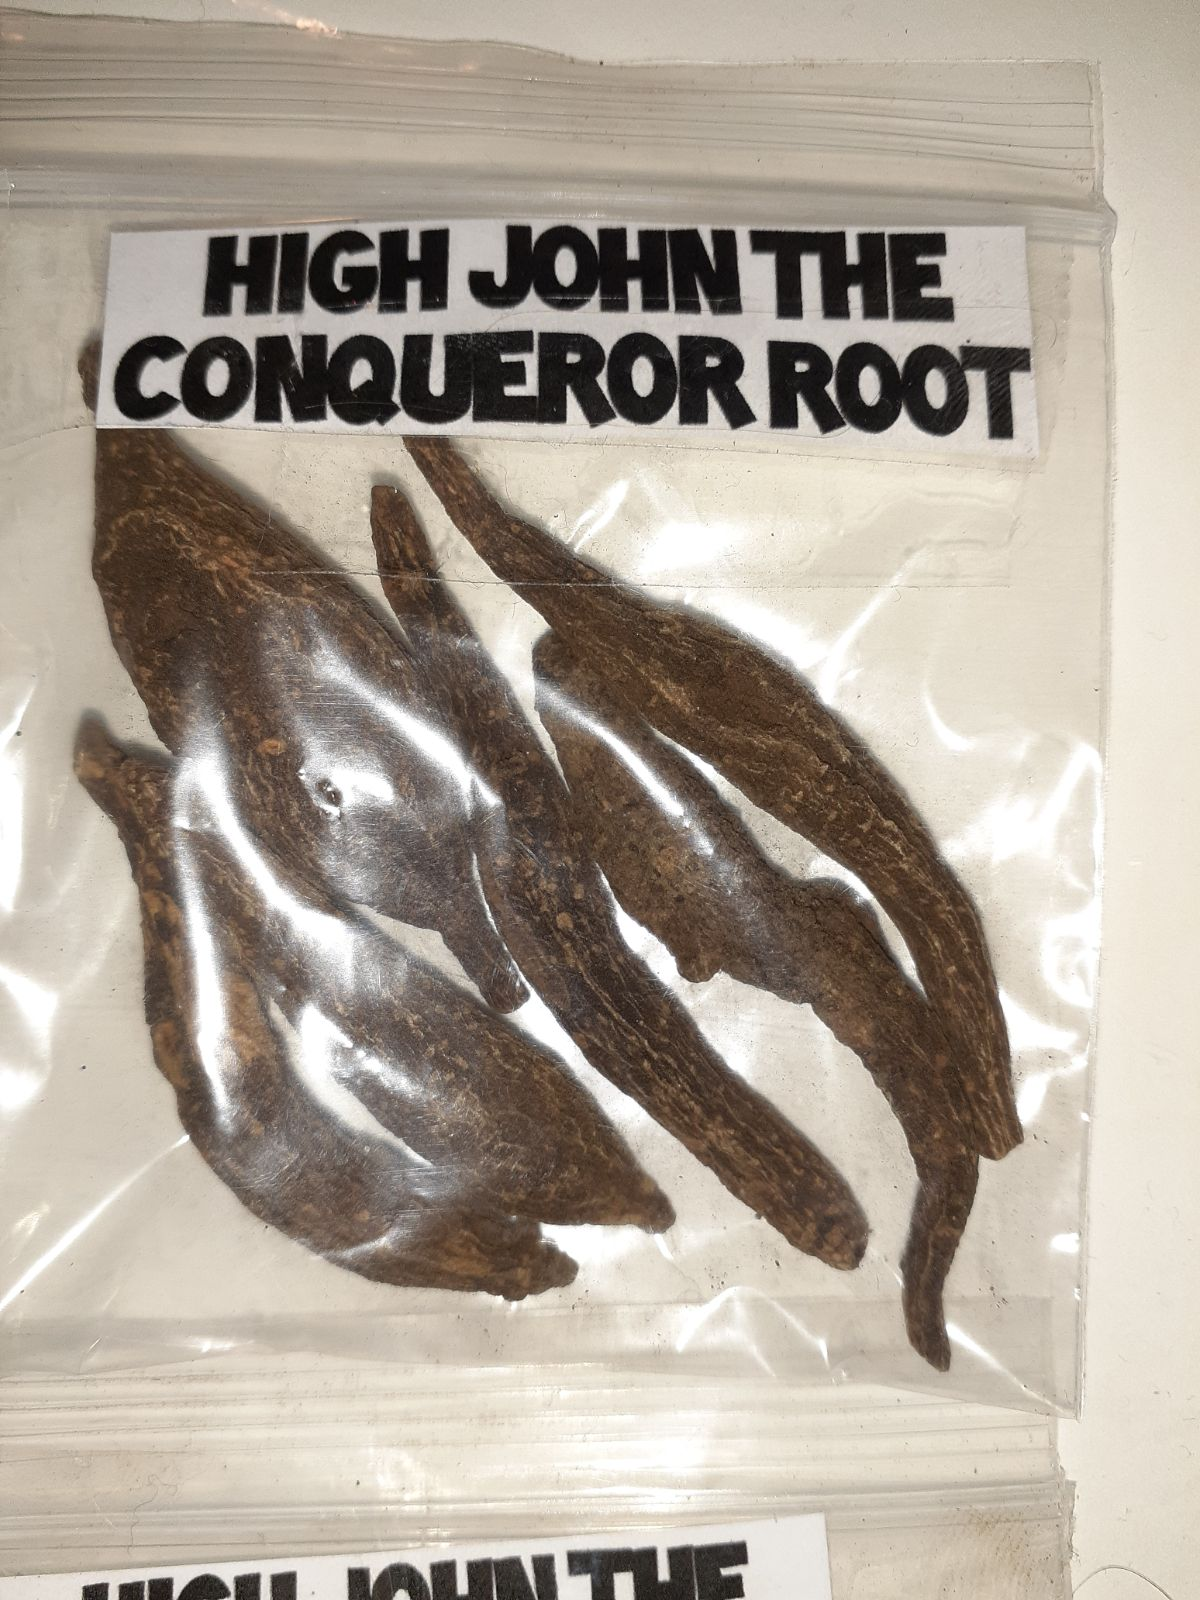 6 WHOLE HIGH JOHN THE CONQUEROR ROOTS